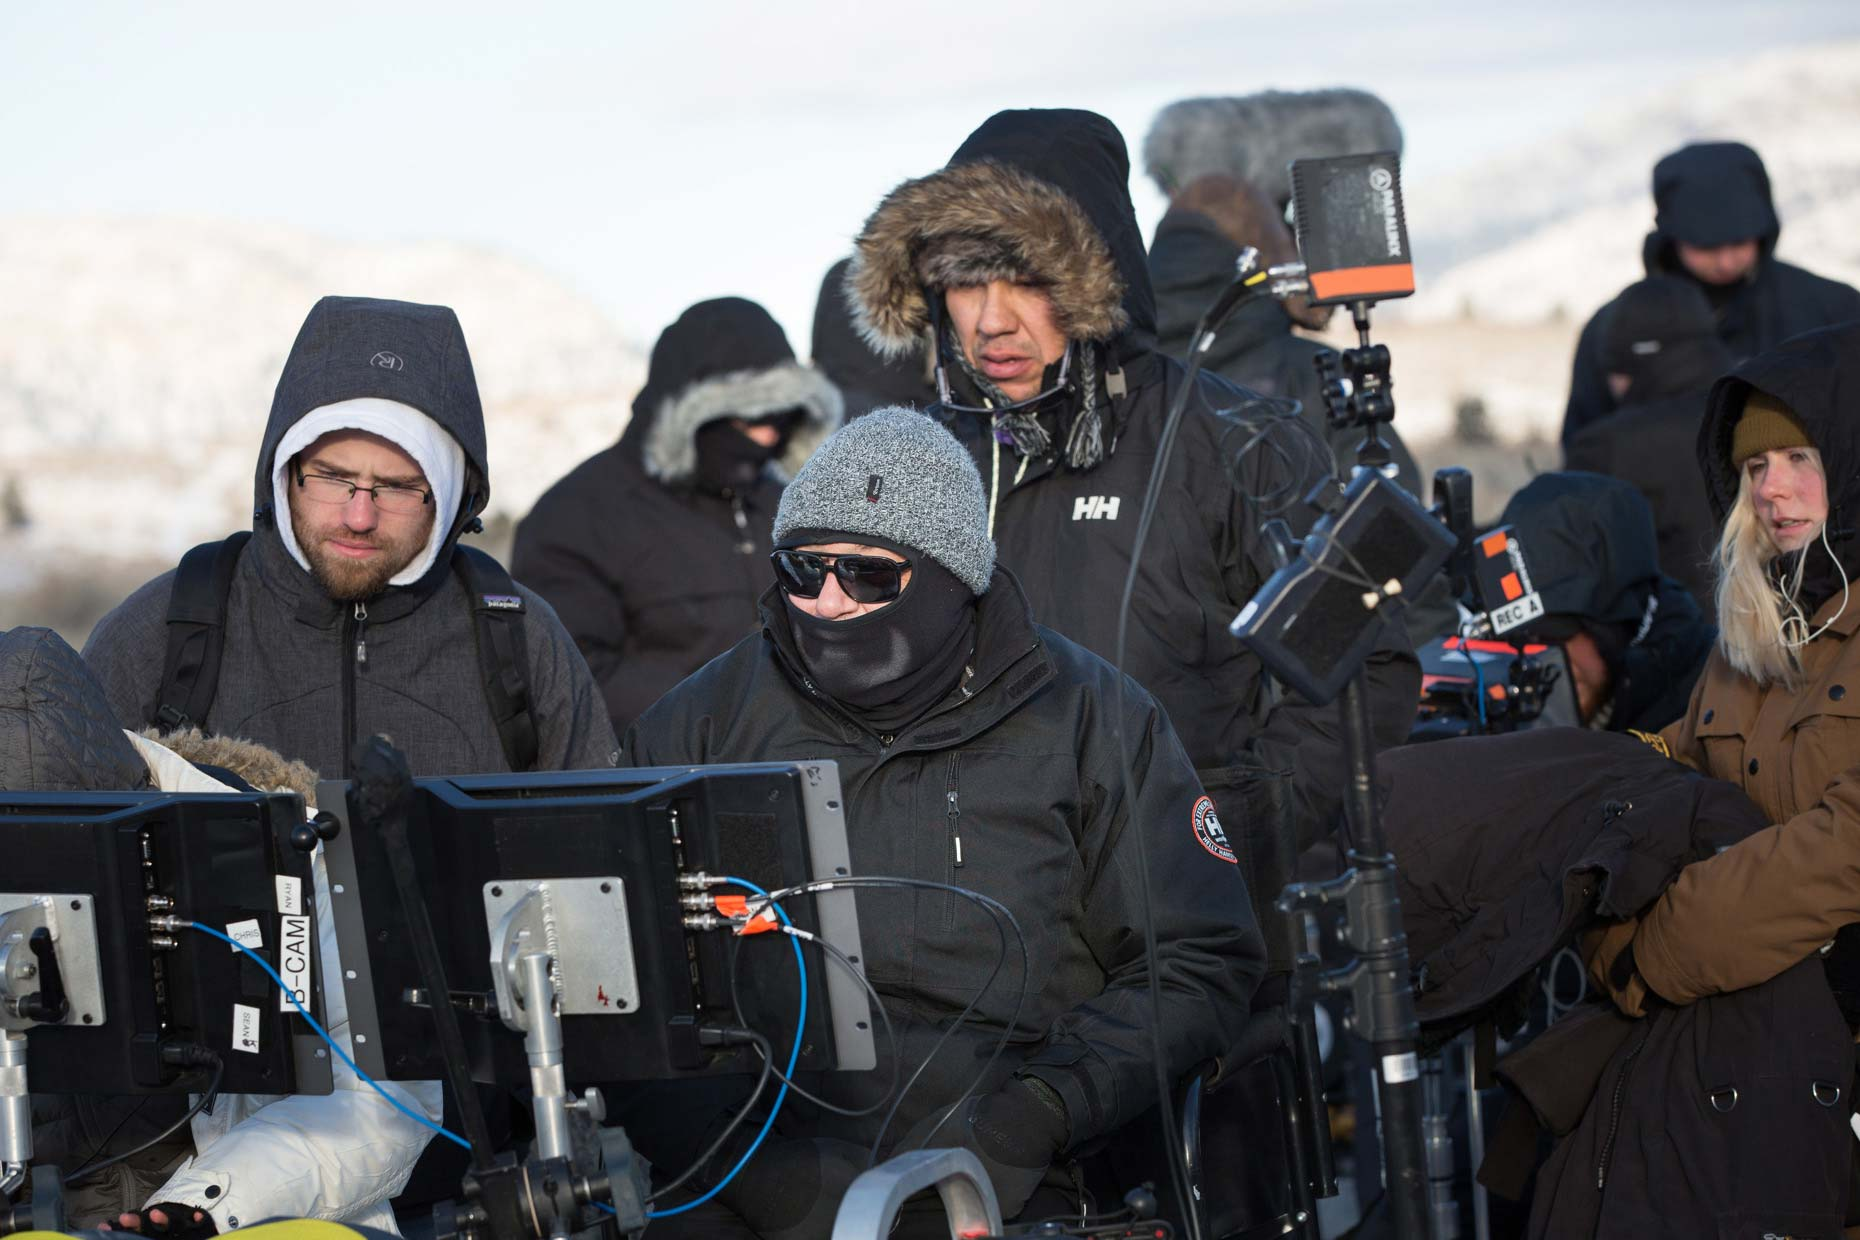 Frozen film crew.  Unit Stills behind the scene photography by Craig Pulsifer